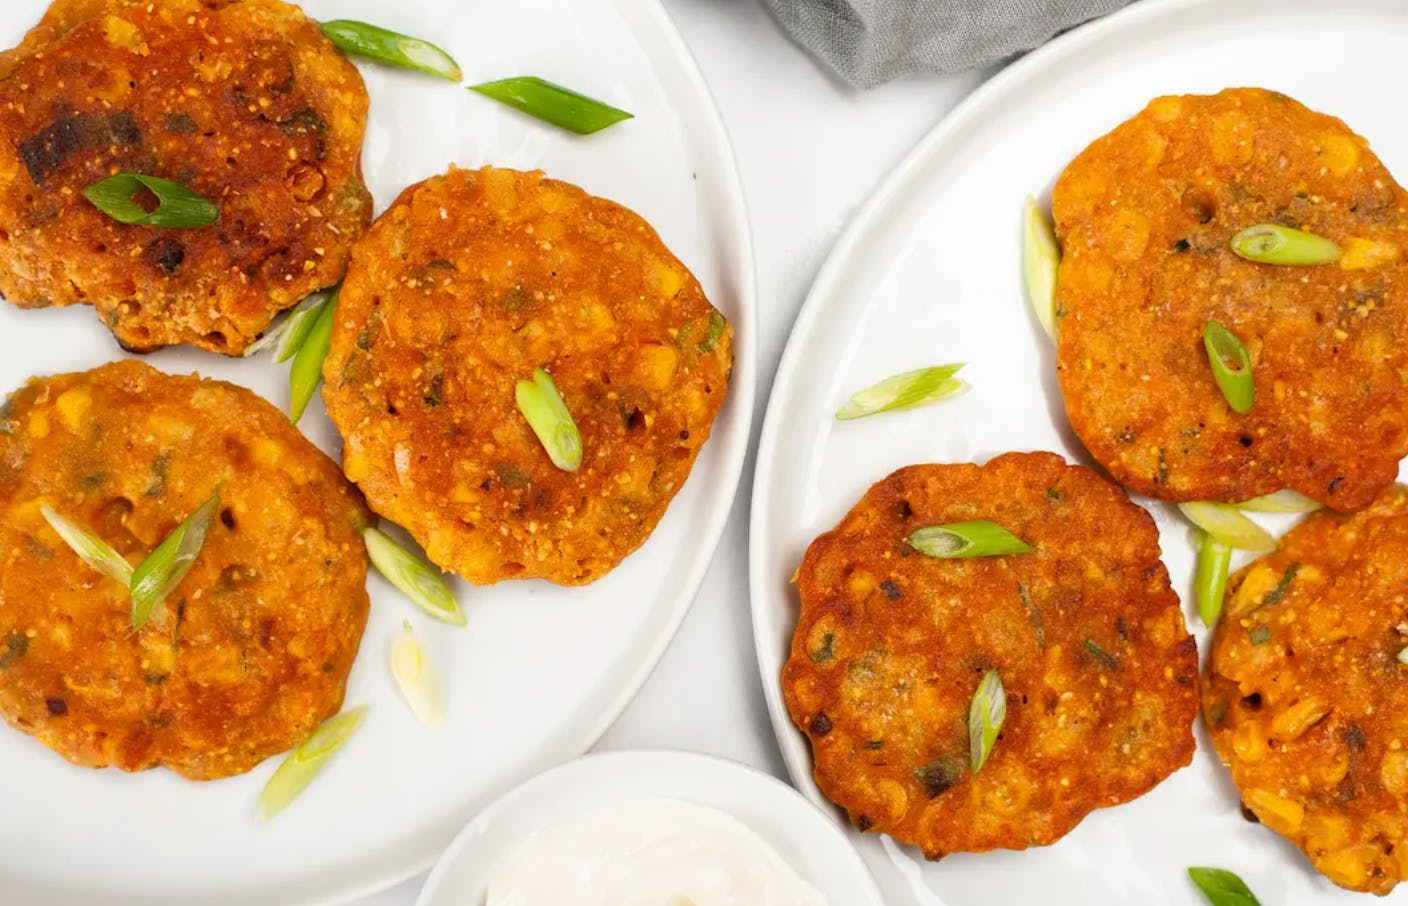 fritters on plates